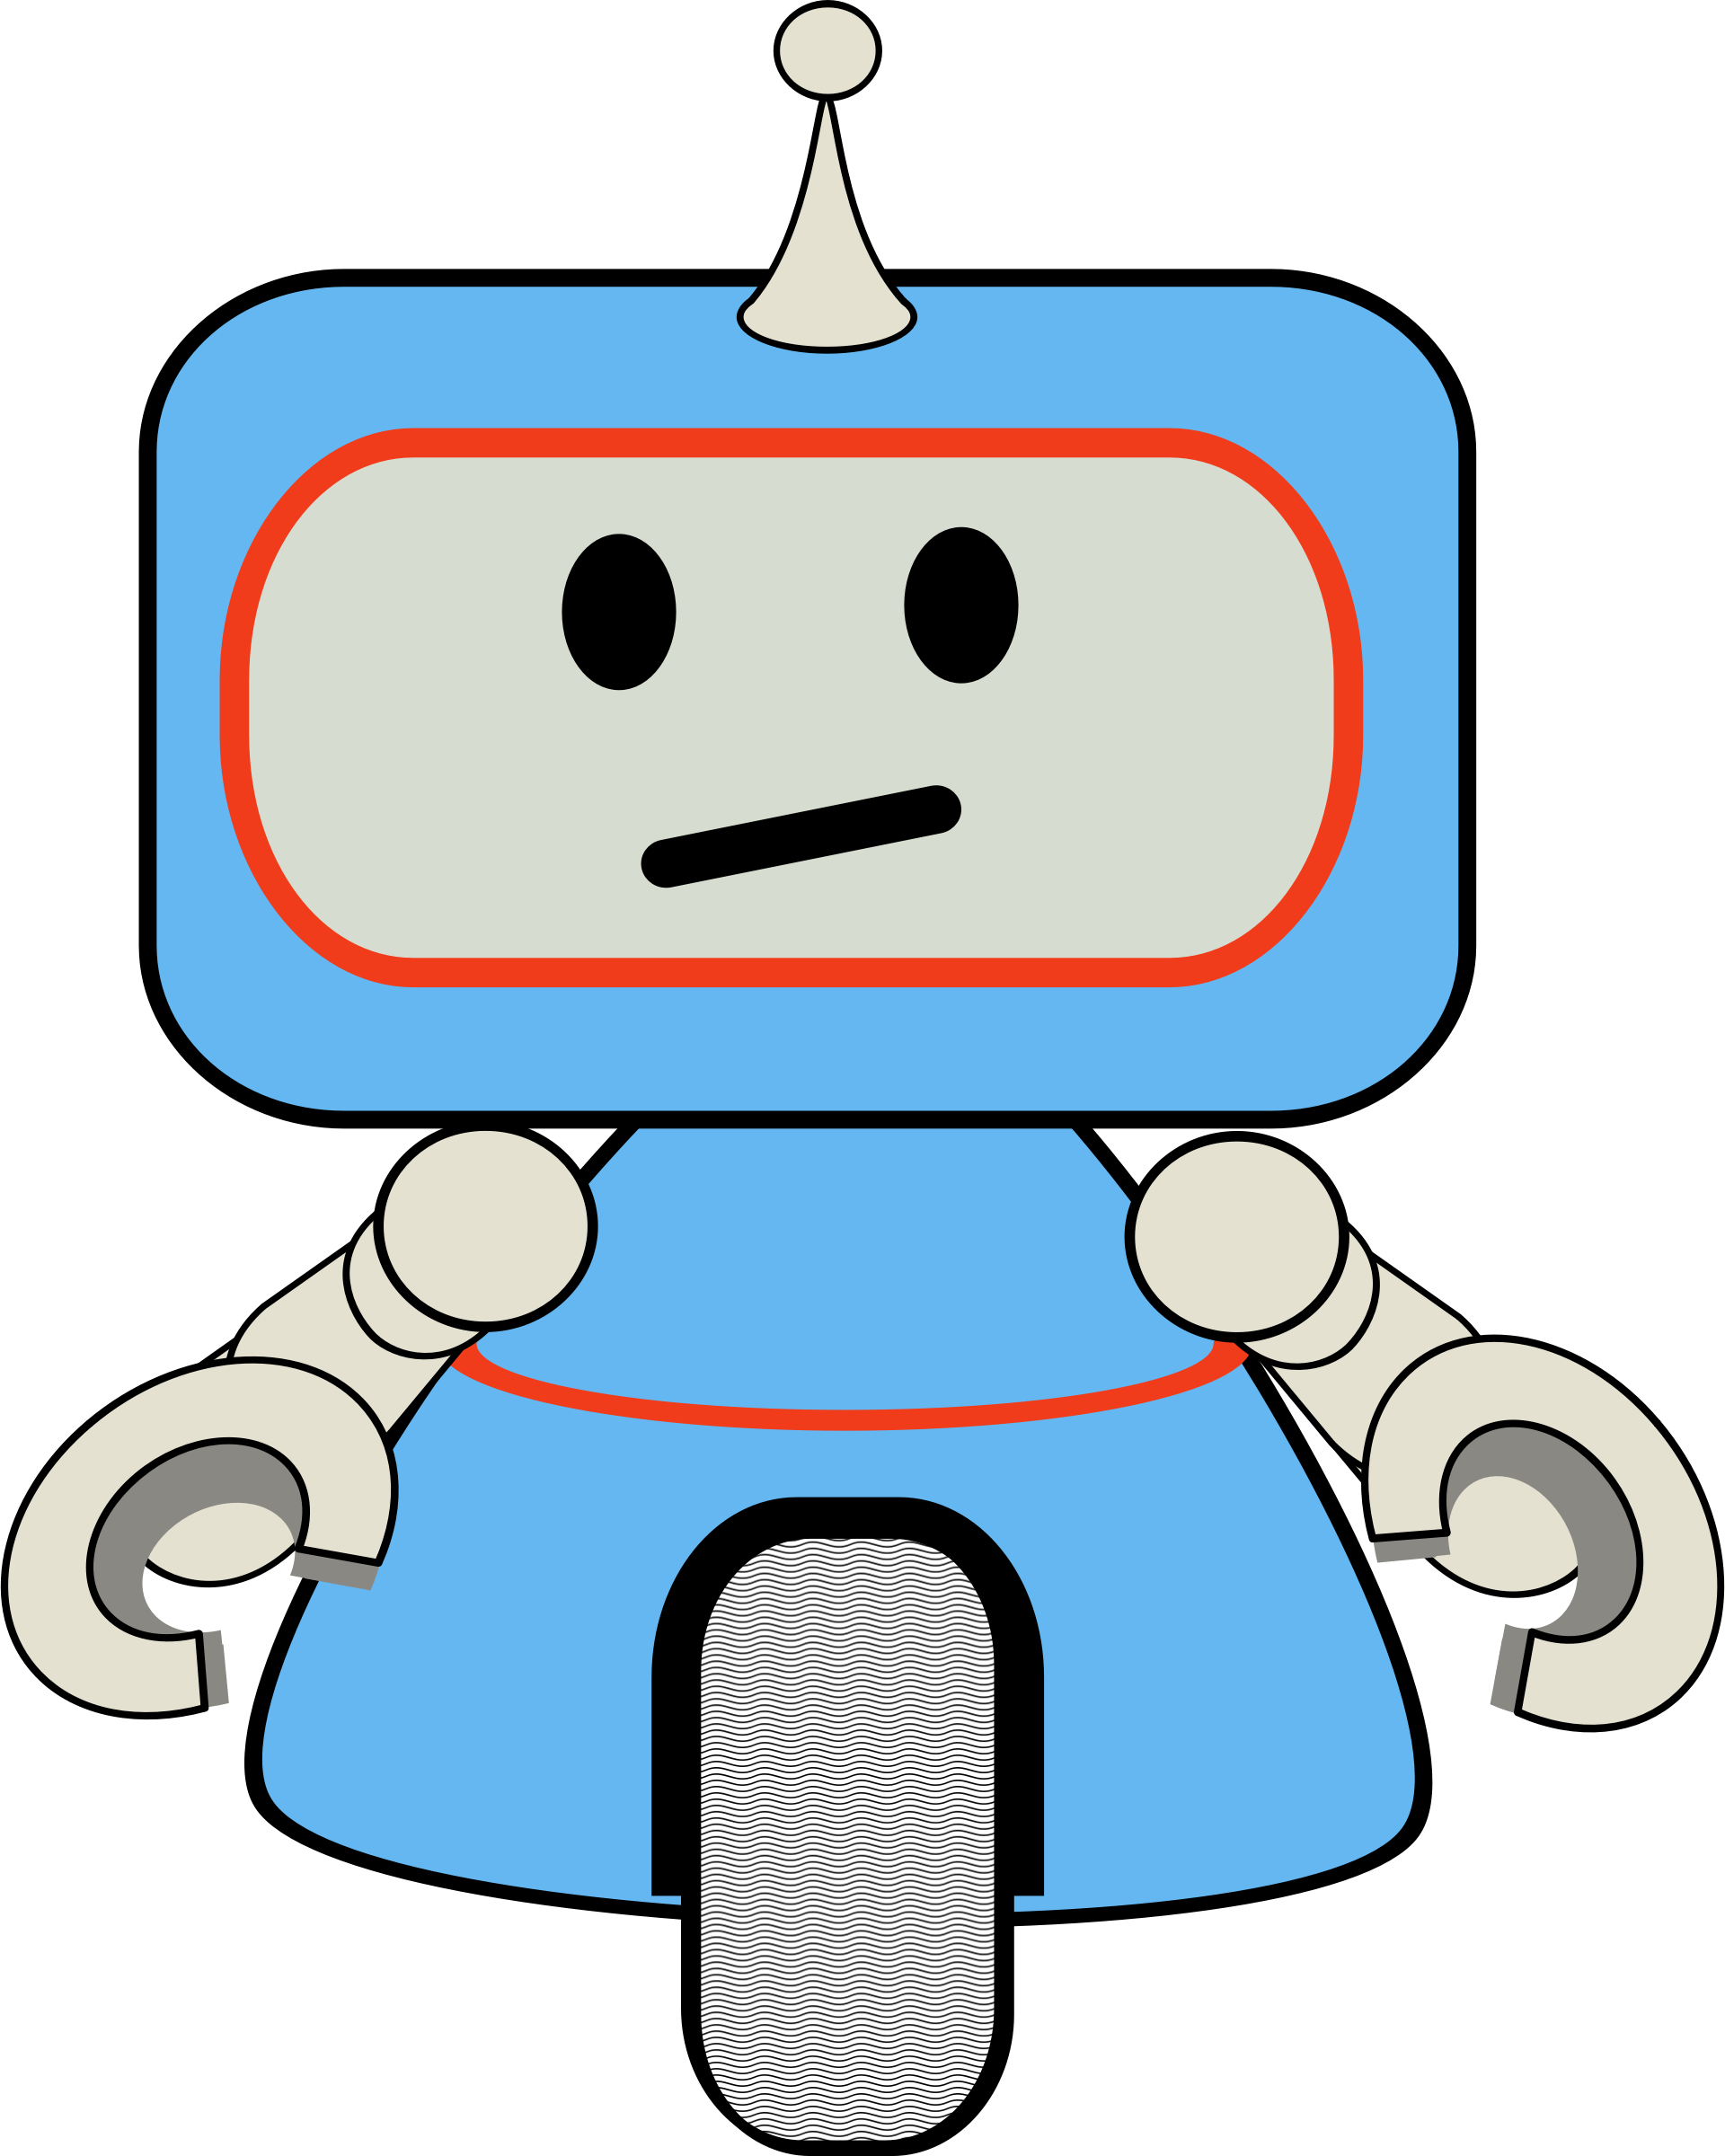 Little robot big image. Wheel clipart cute